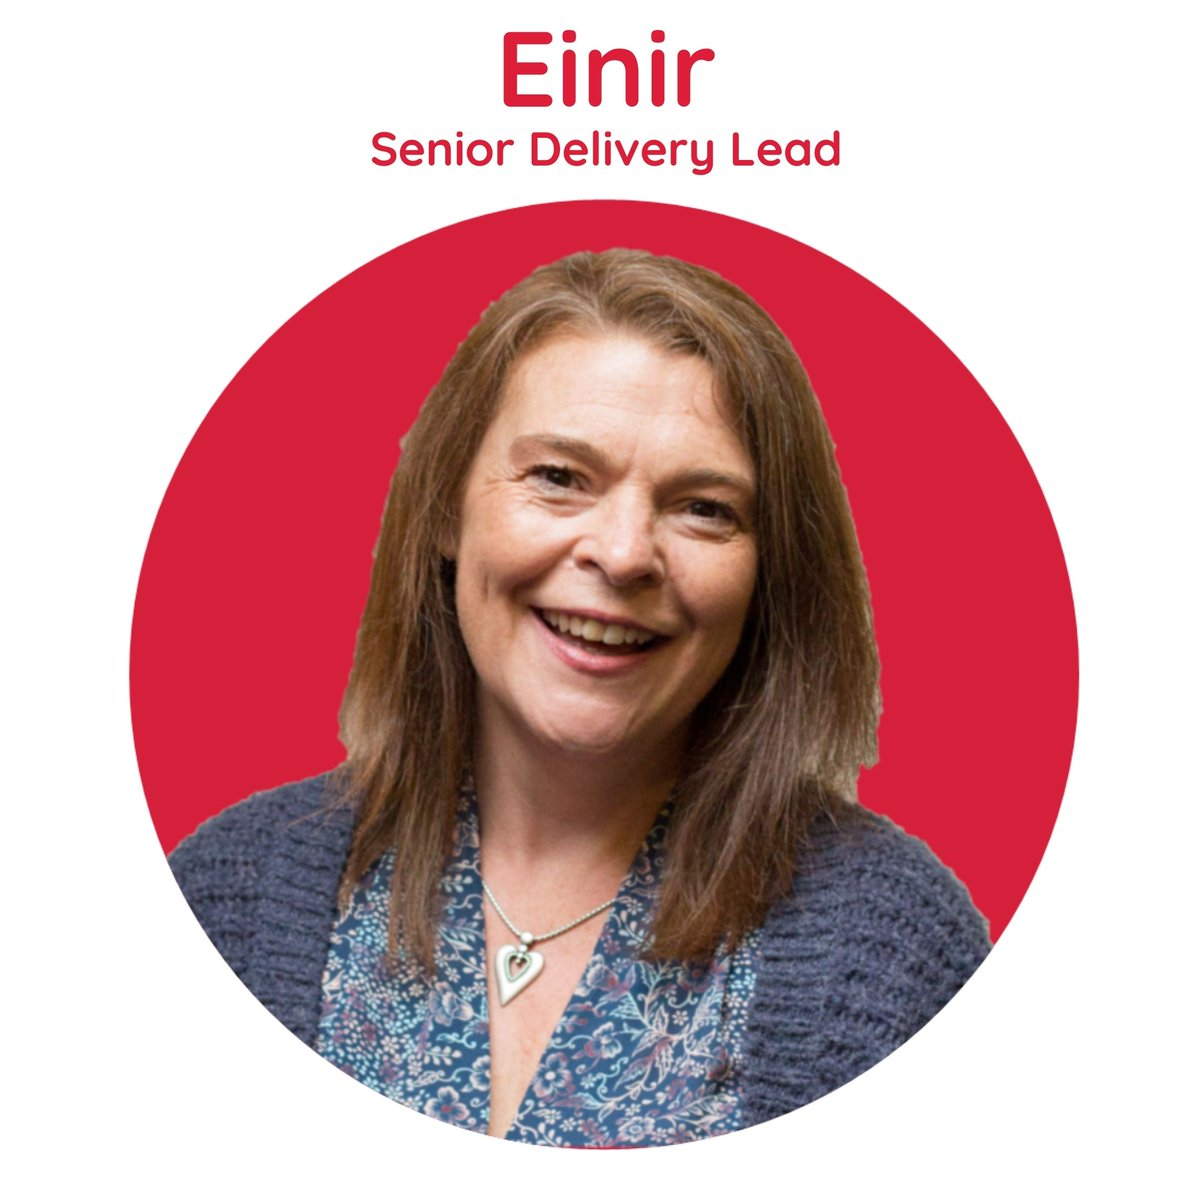 Meet the team: it's Einir! Why not say hello?